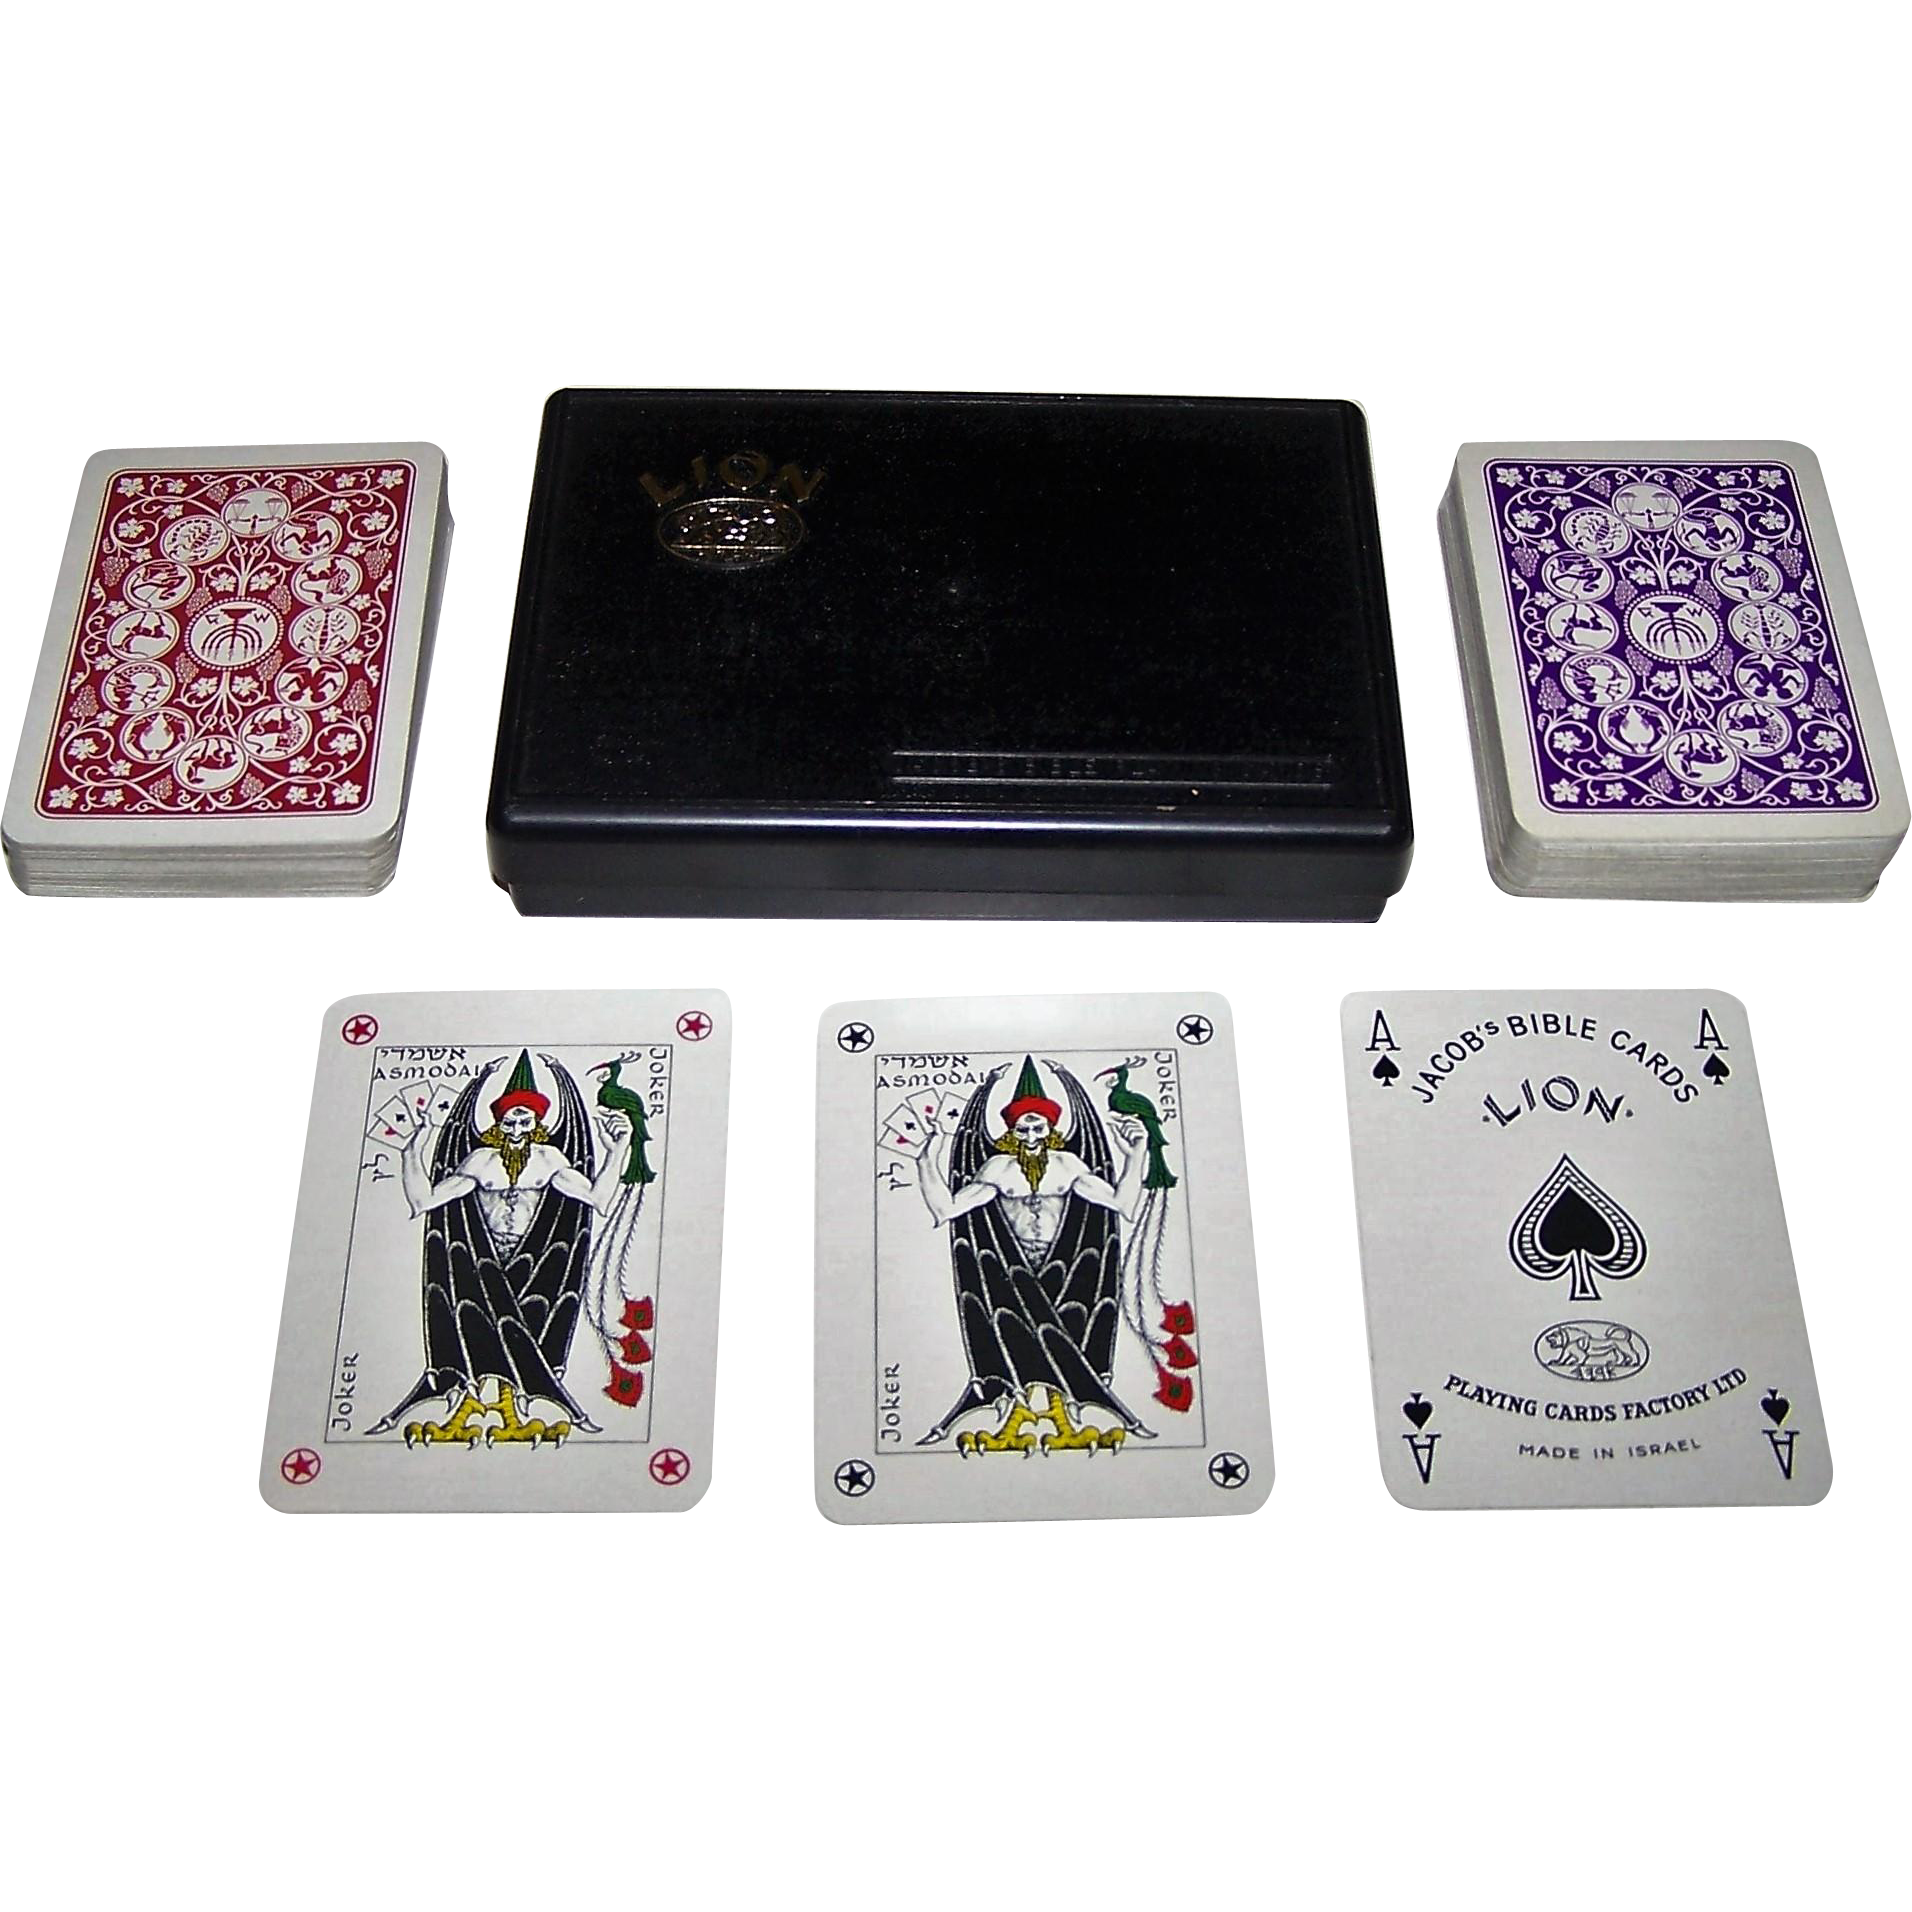 "Lion ""Jacob's Bible Cards"" Playing Cards, Ze'ev Raban Designs, c.1965"